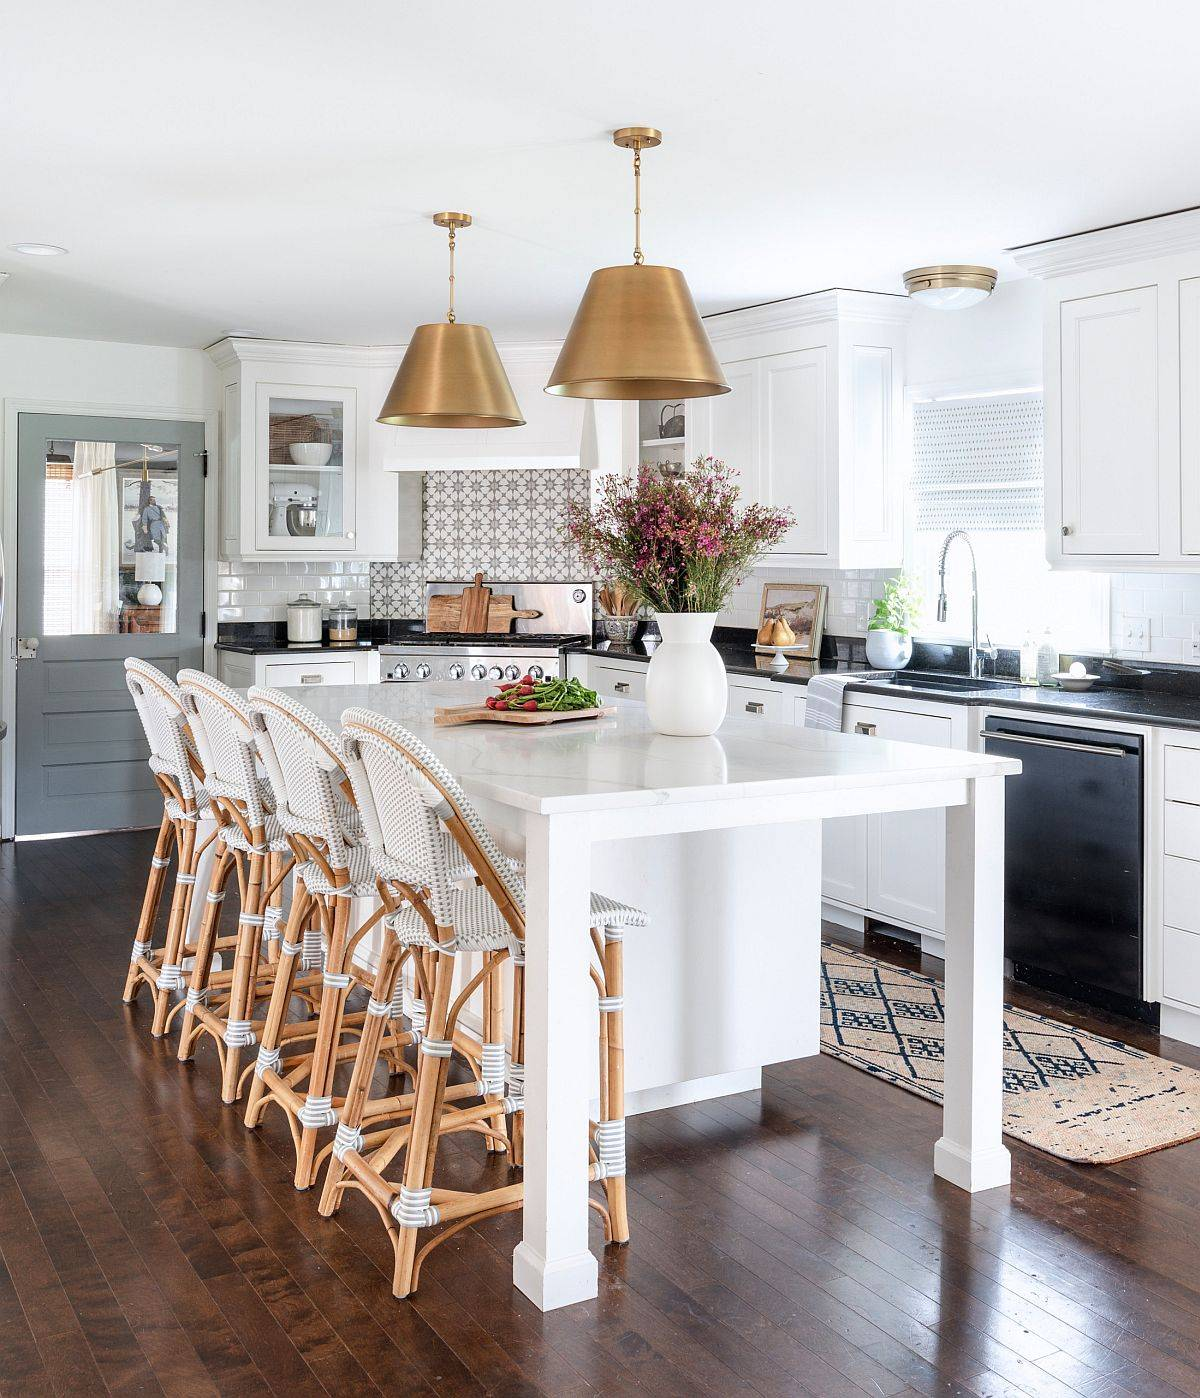 White and gray modern farmhouse kitchen finds balance between both the styles